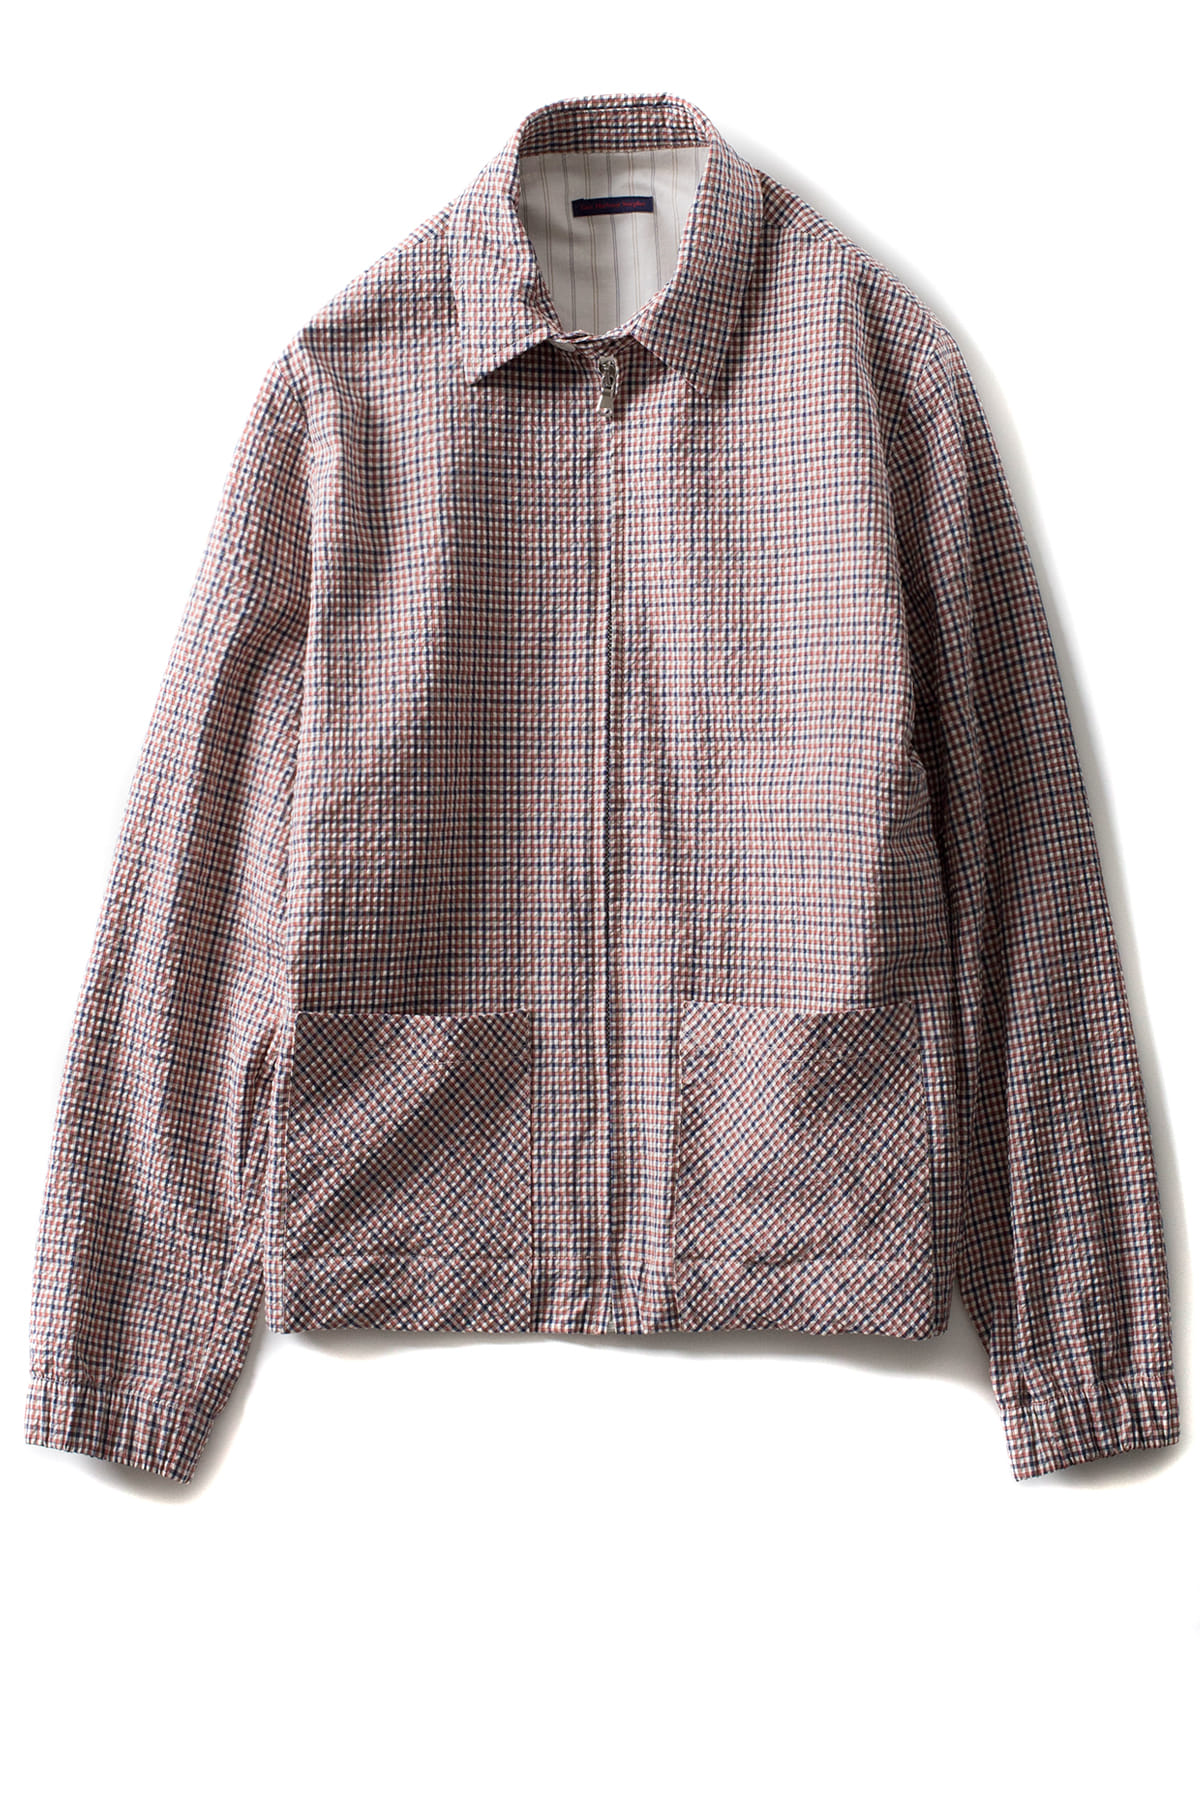 East Harbour Surplus : Barret Blouson (Window Pane)